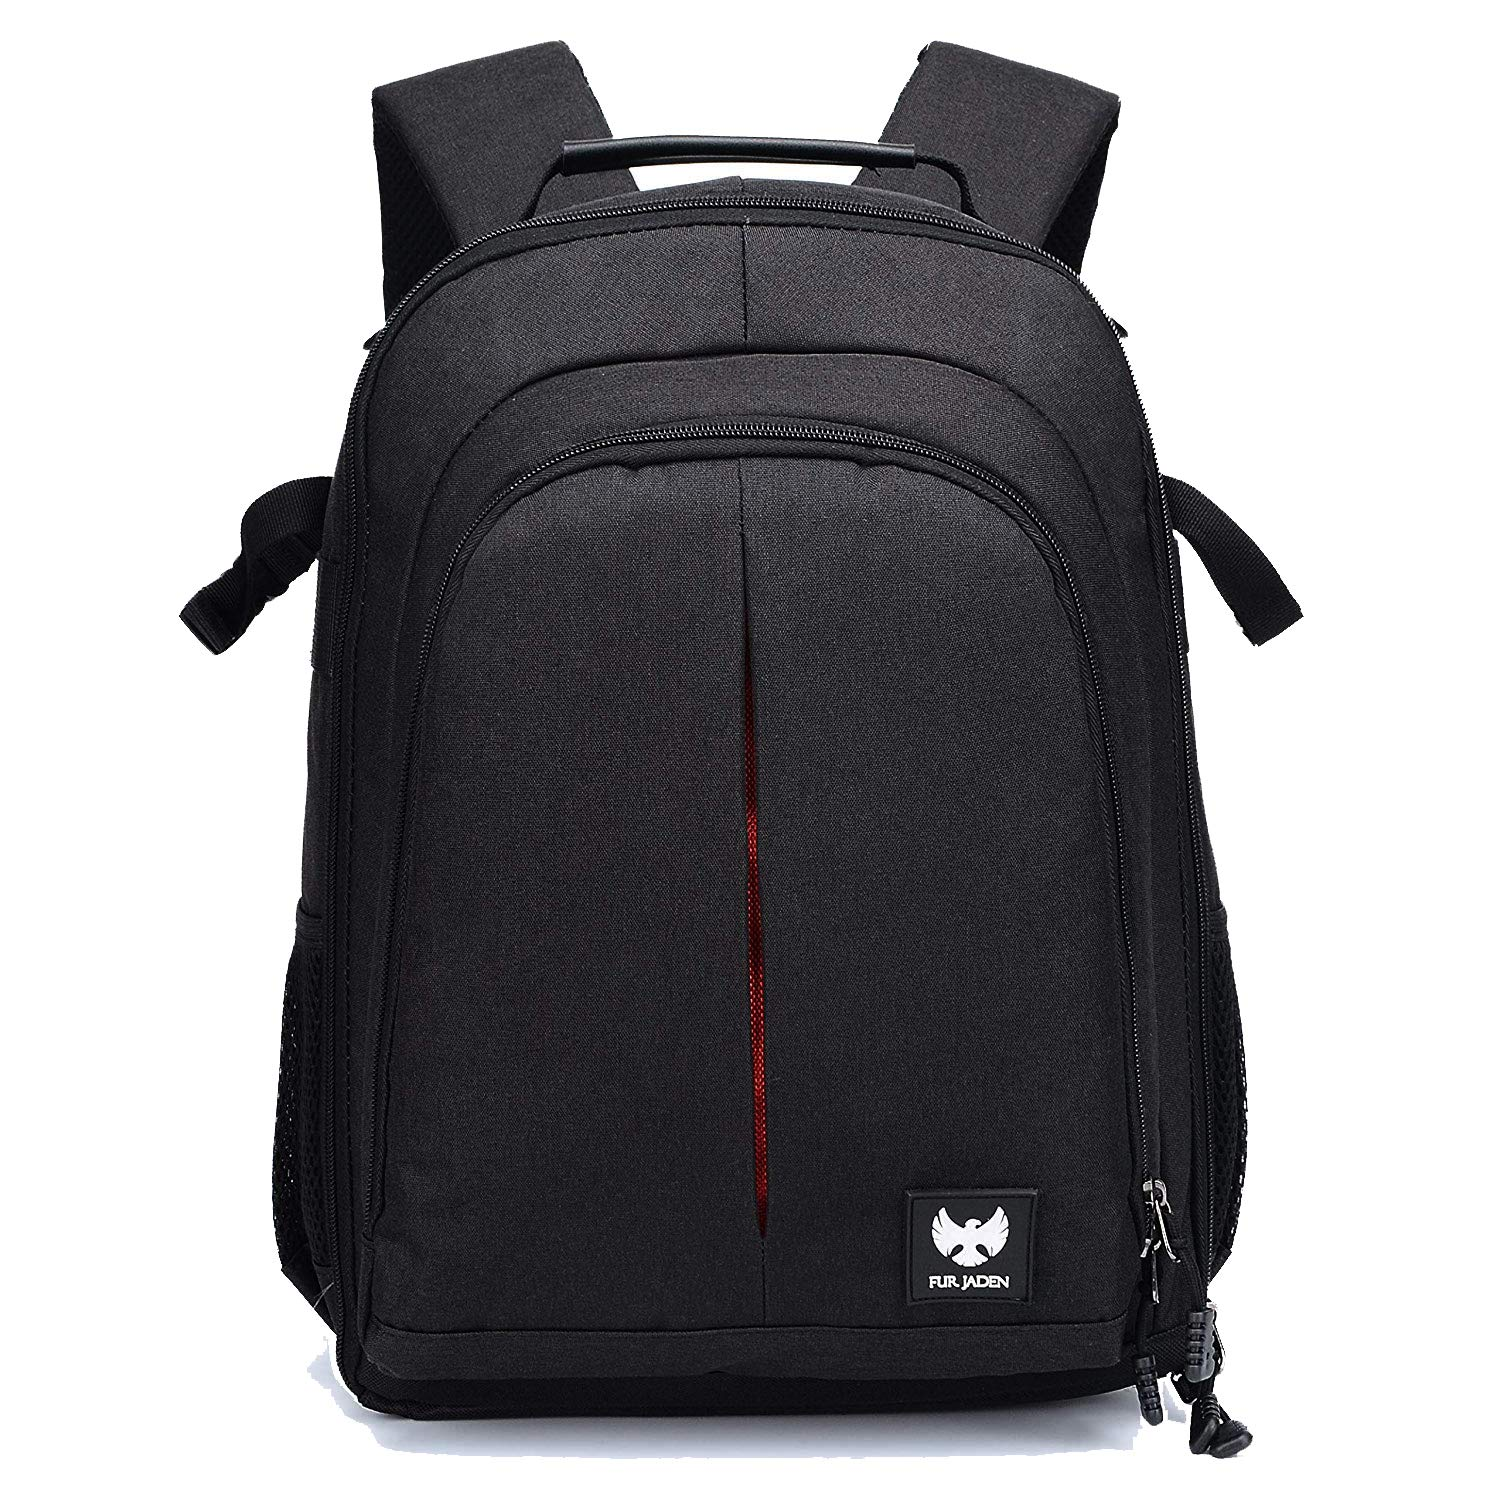 FUR JADEN Laptop Backpack for Canon Nikon Sigma Olympus with Tripod Holder